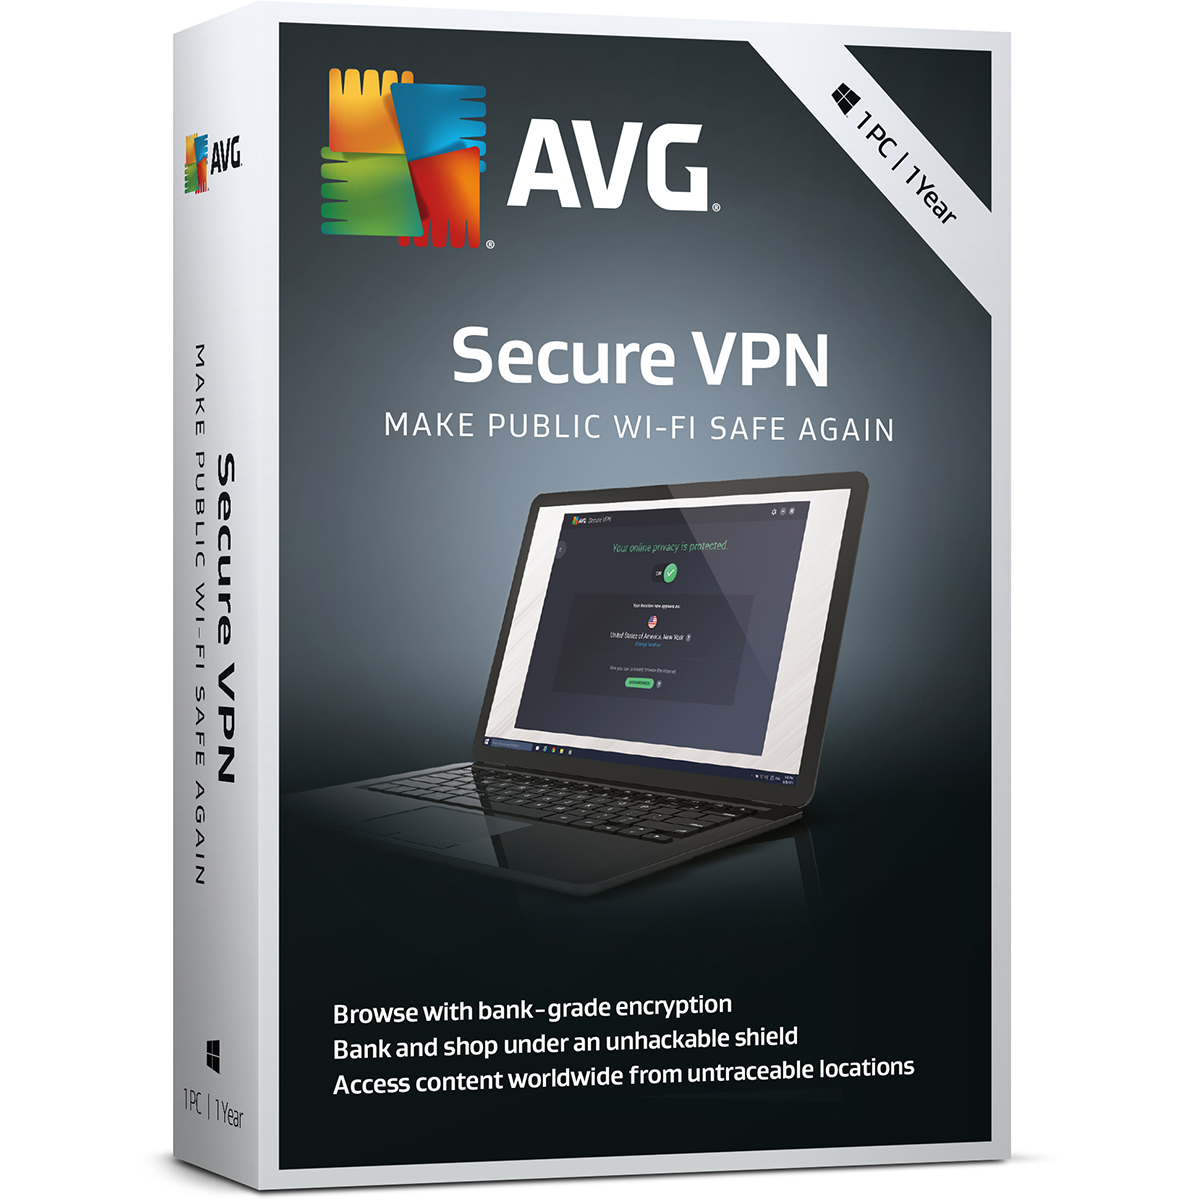 AVG Secure VPN 2 Years License ( 1 Active Connection at a time )